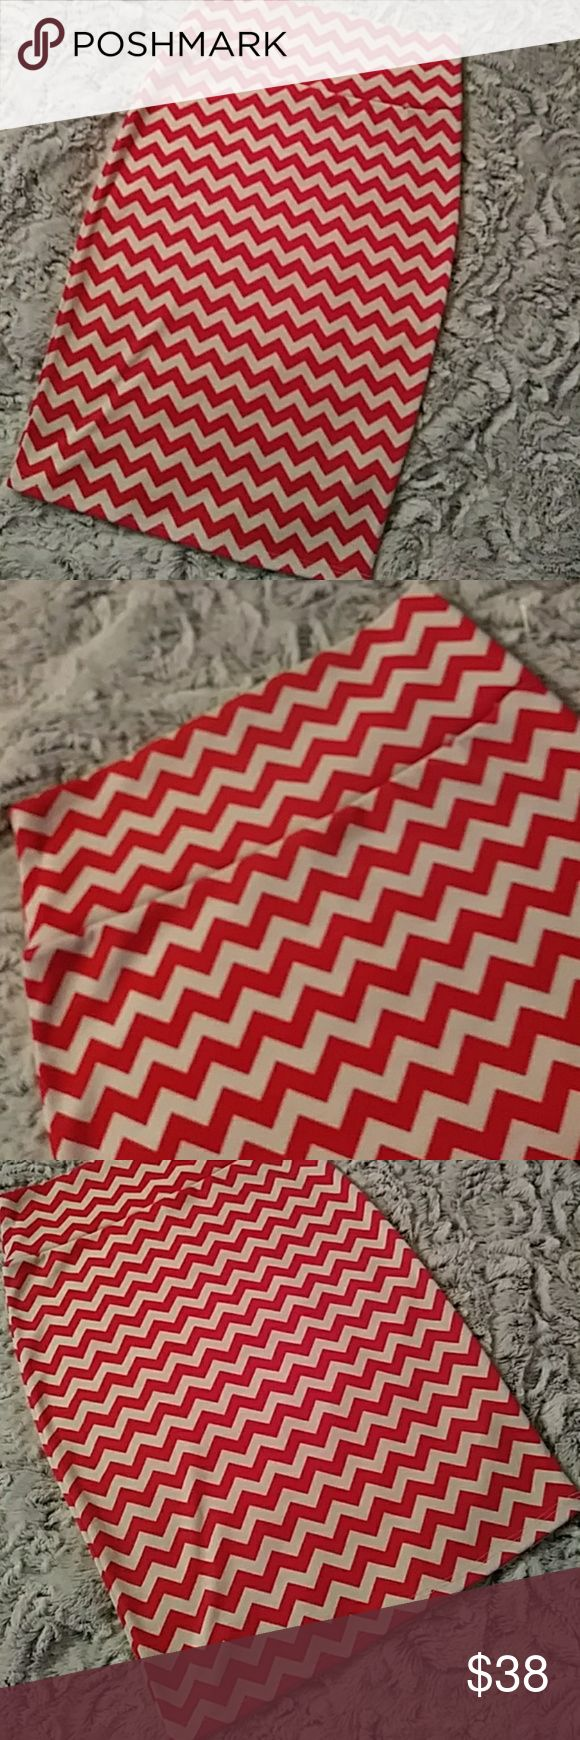 NEW LuLaRoe red and white chevron Cassie skirt Beautiful, chic, lightweight summer and spring skirt... Wear it with a belt, with some leggings on a cool breezy day or on its own! Red and white chevron style design Size XS true to size with lots of stretch and butter soft fabric This skirt is BRAND NEW. The tags were torn off as I planned to keep but never been worn or washed. Too many clothes. LuLaRoe in particular and must downsize! LuLaRoe Skirts